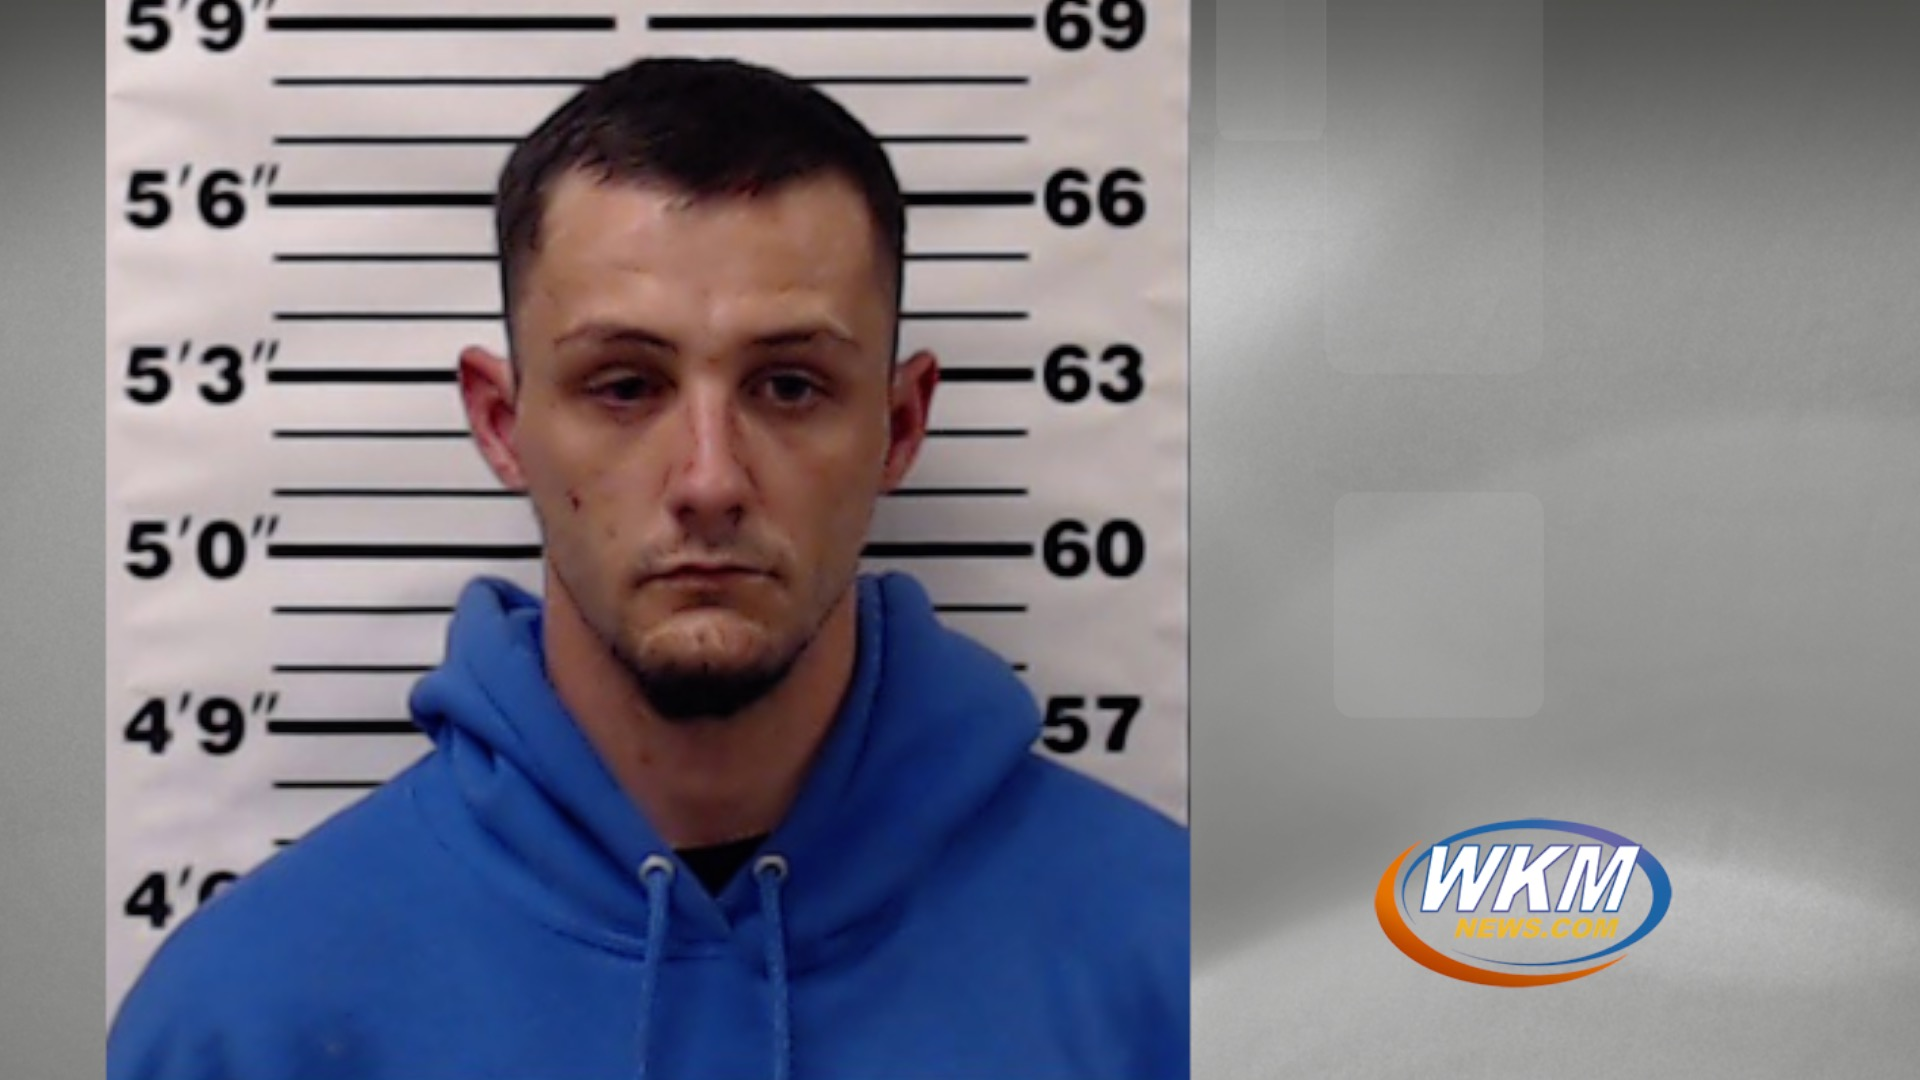 Man Arrested on Trespassing and Drug Charges During Traffic Stop